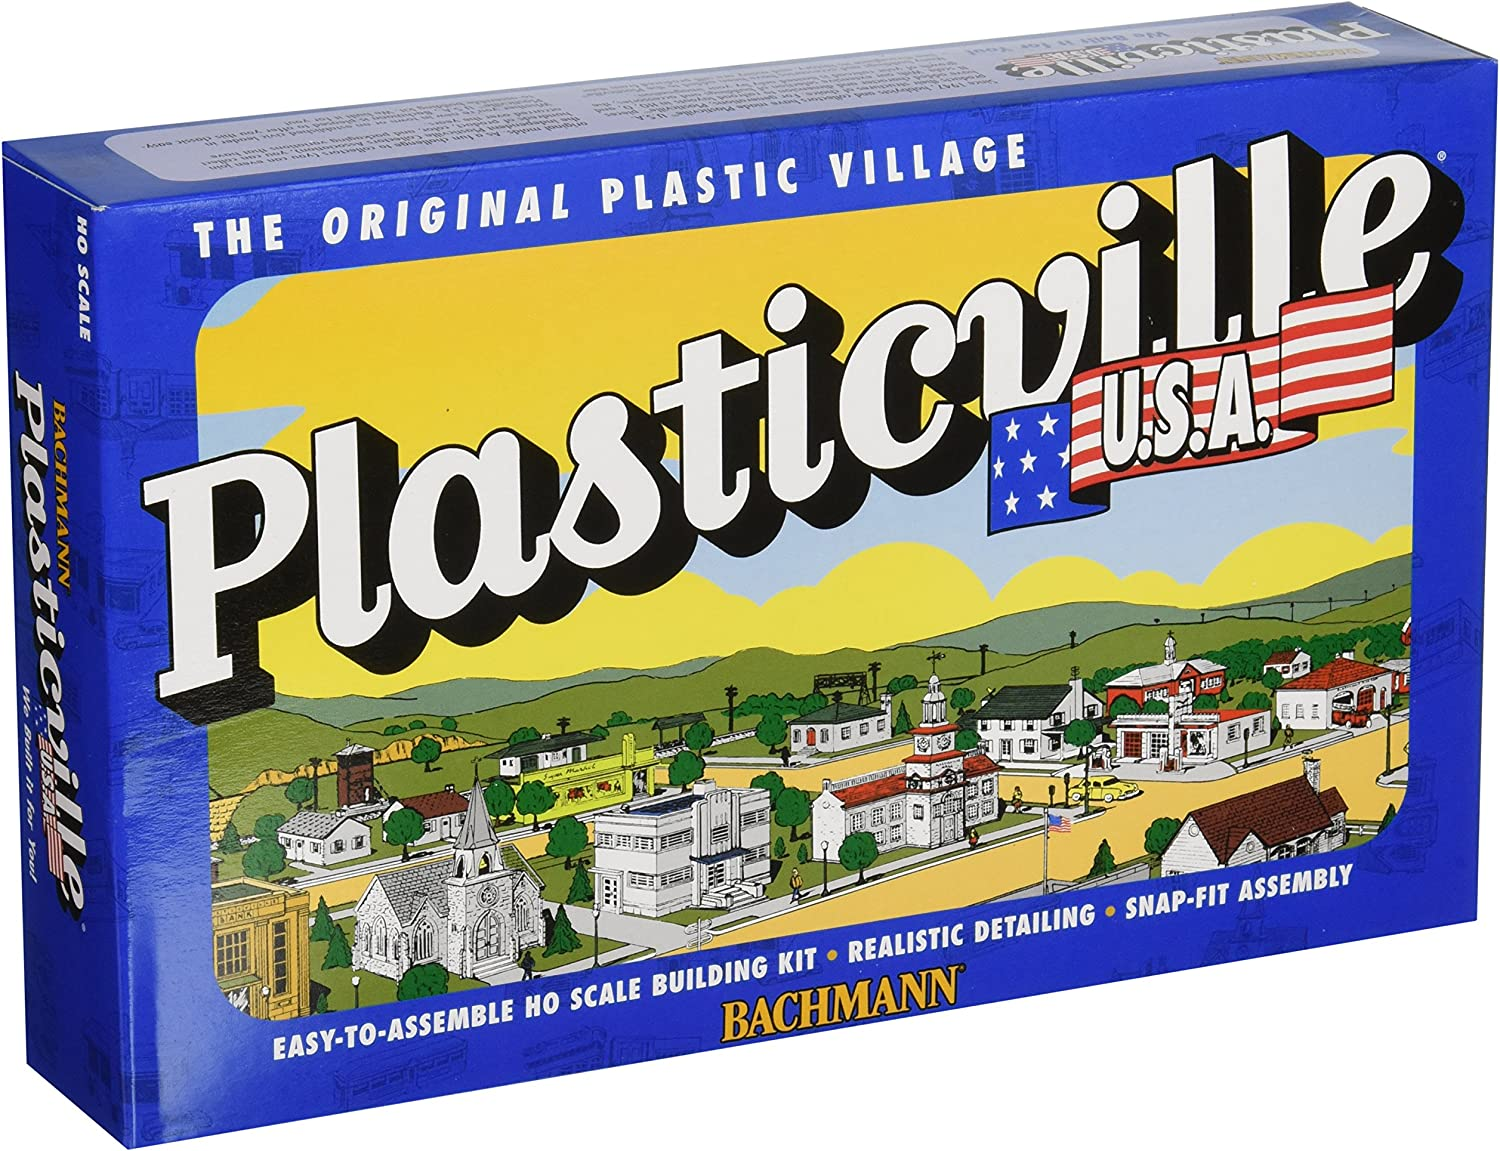 Bachmann Trains - PLASTICVILLE U.S.A. BUILDINGS – CLASSIC KITS - FARM BUILDINGS with ANIMALS - HO Scale